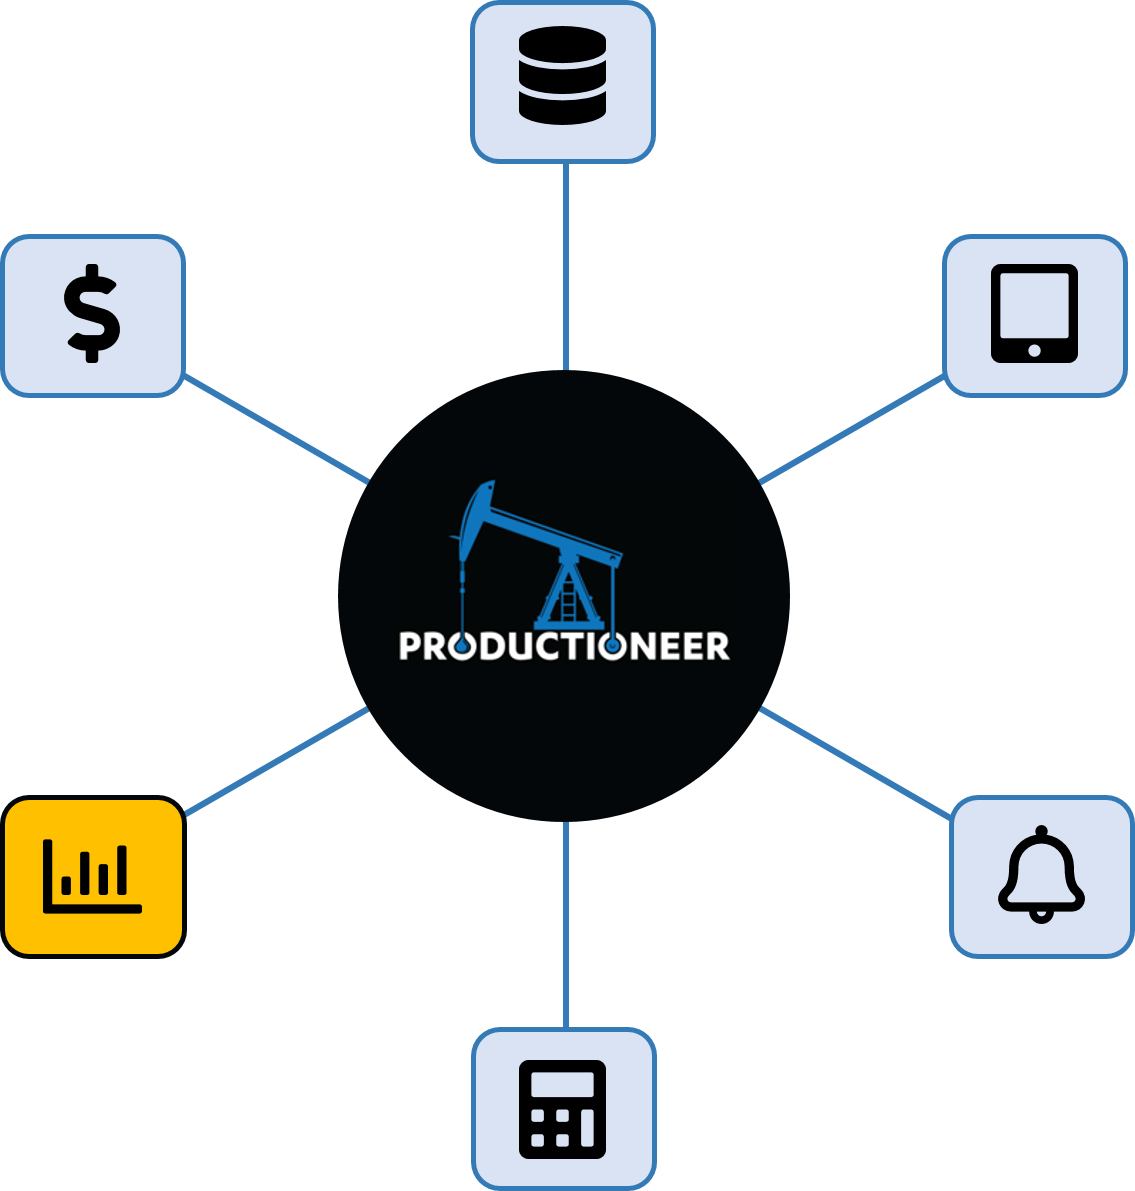 Productioneer reporting and analytics feature wheel